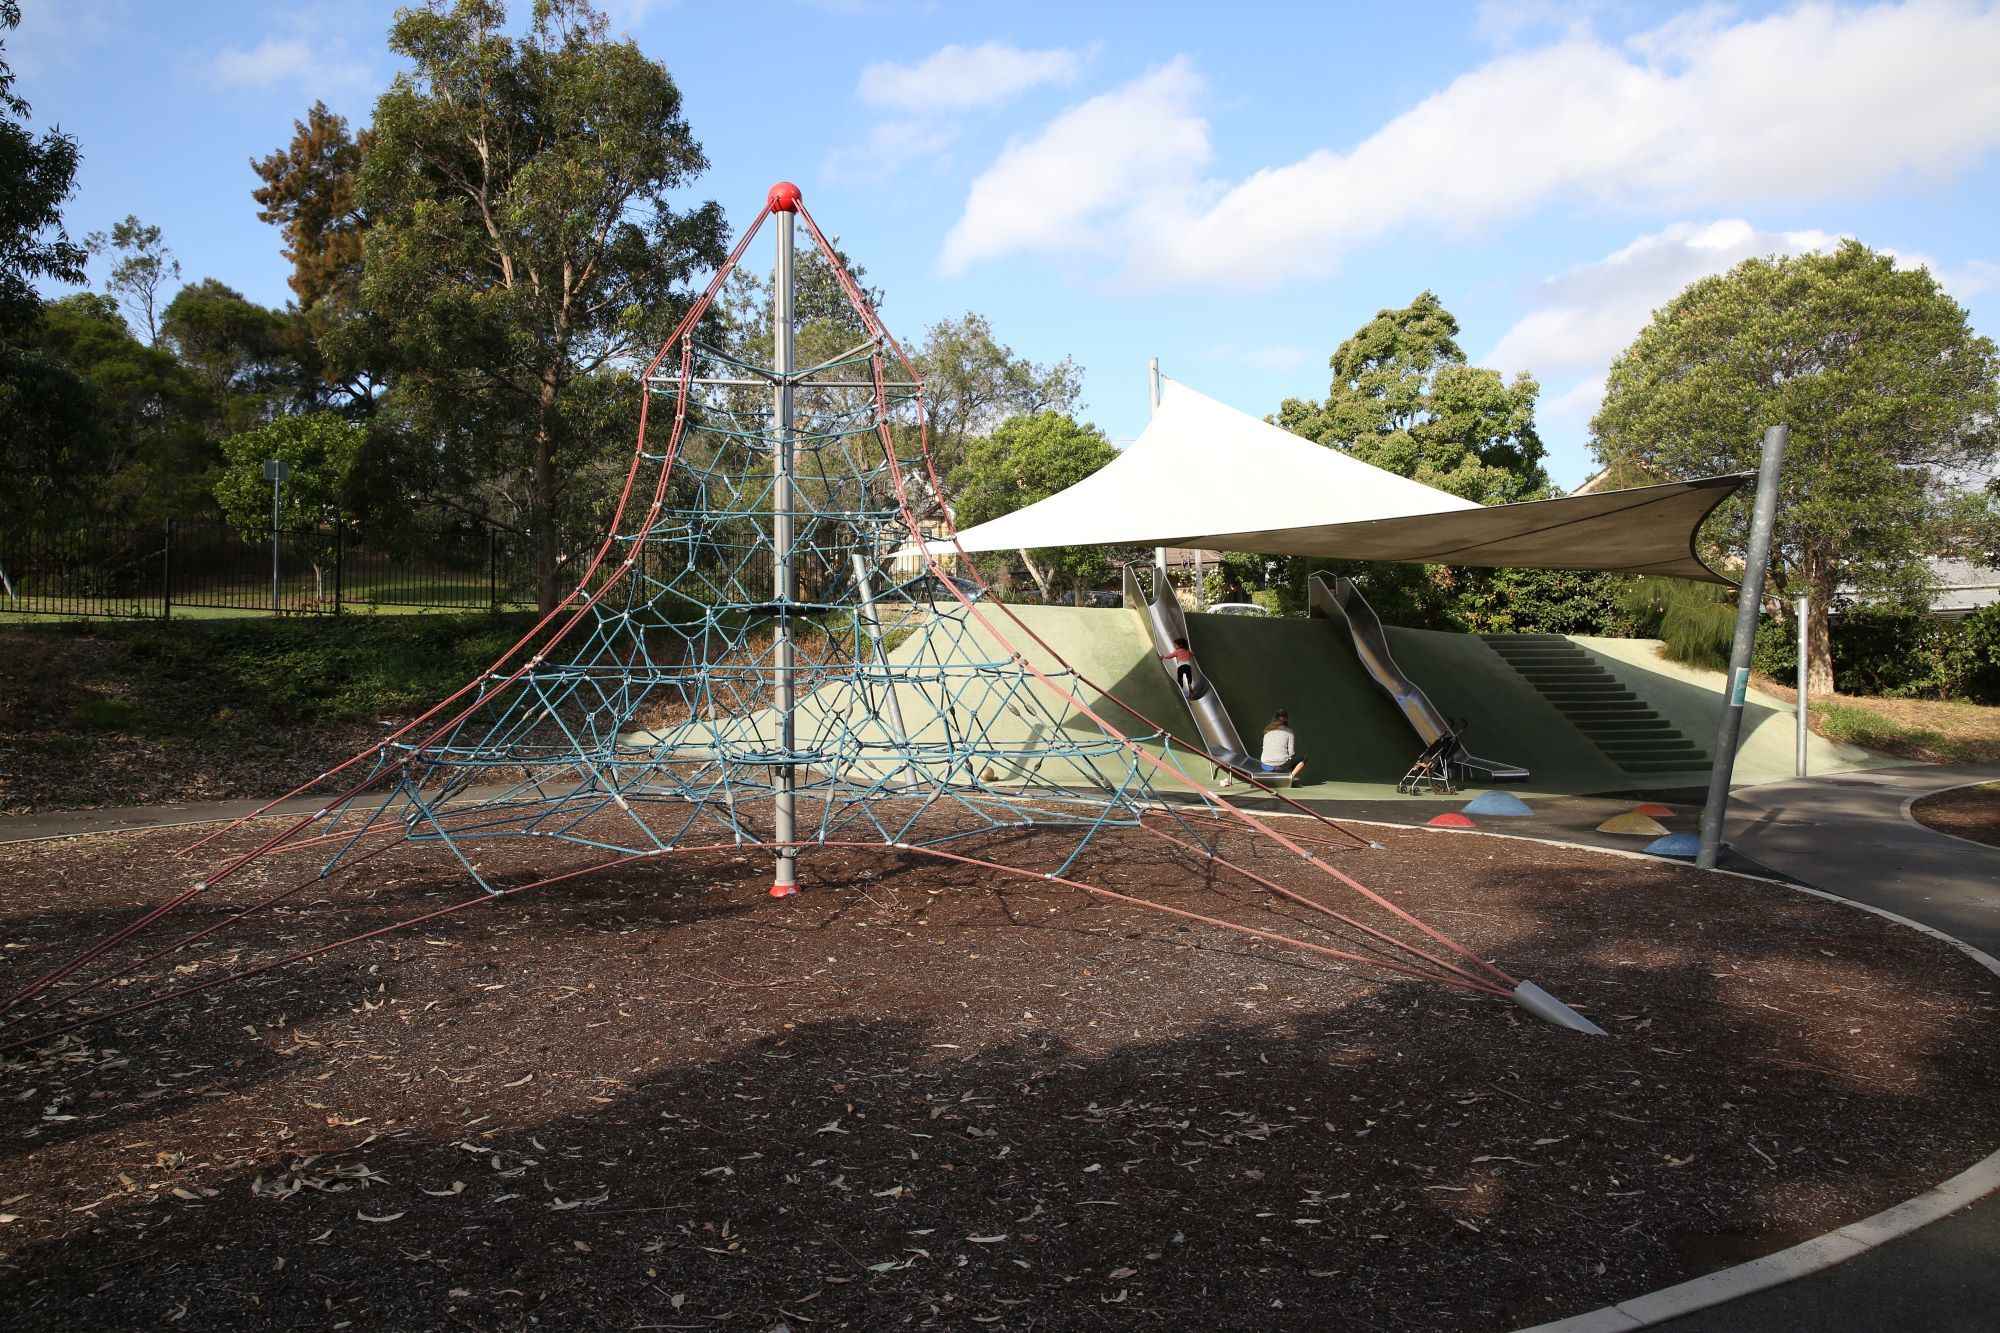 Climbing net and slides at playground on the Bay Run